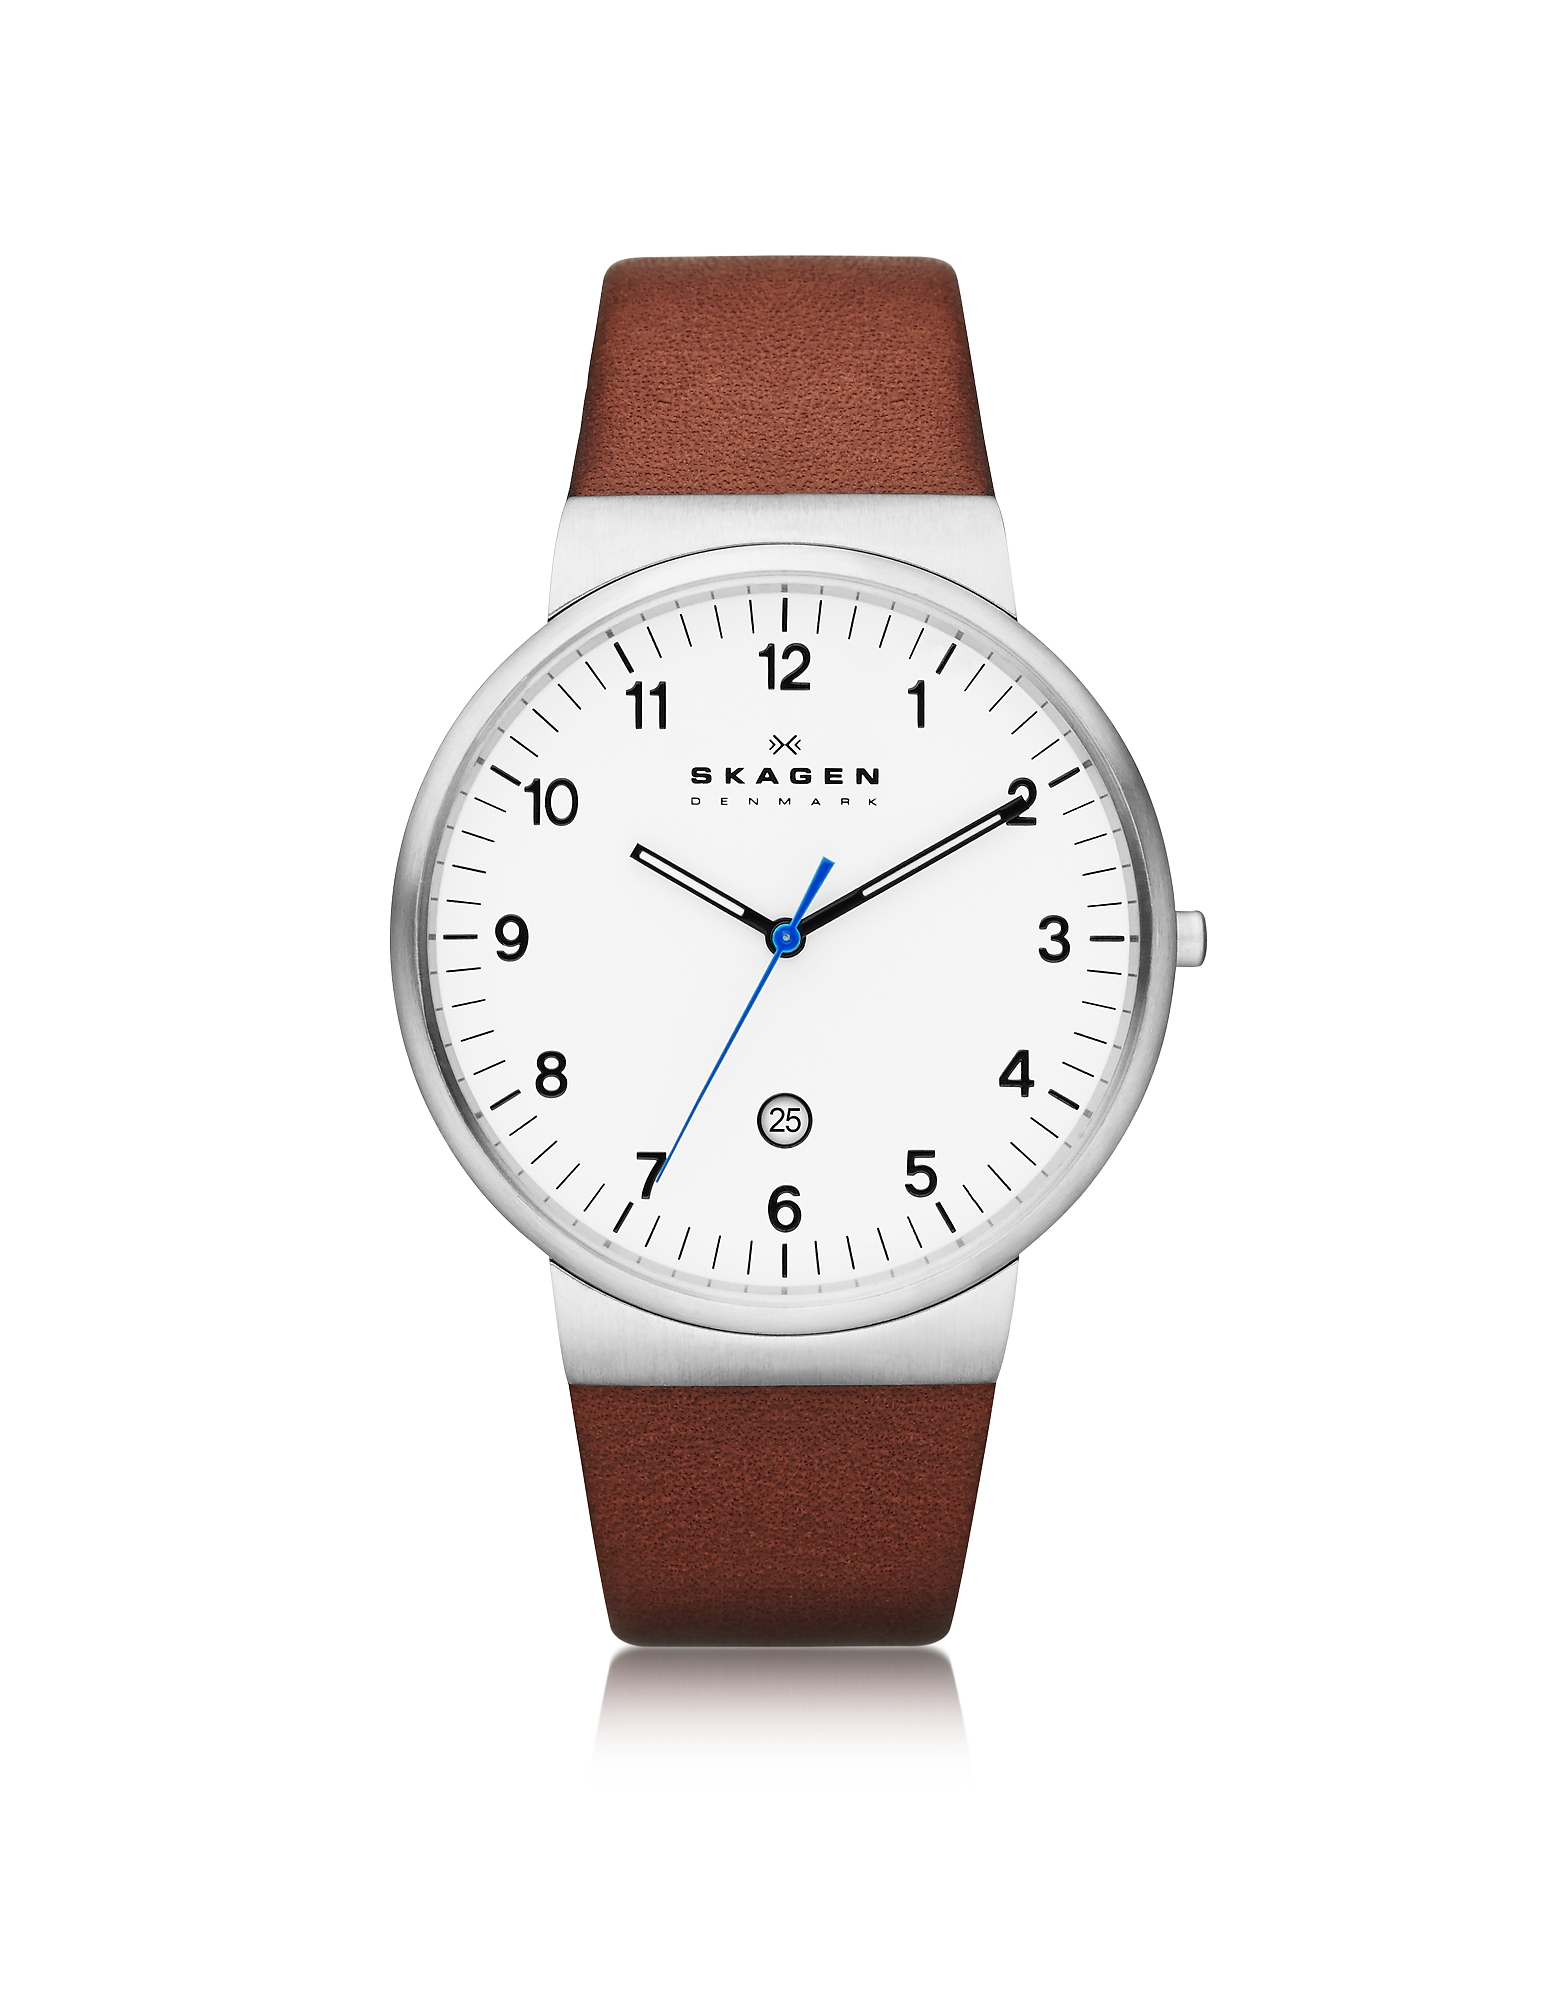 Skagen Men's Watches, Ancher Round Steel Case Men's Watch w/Leather Strap